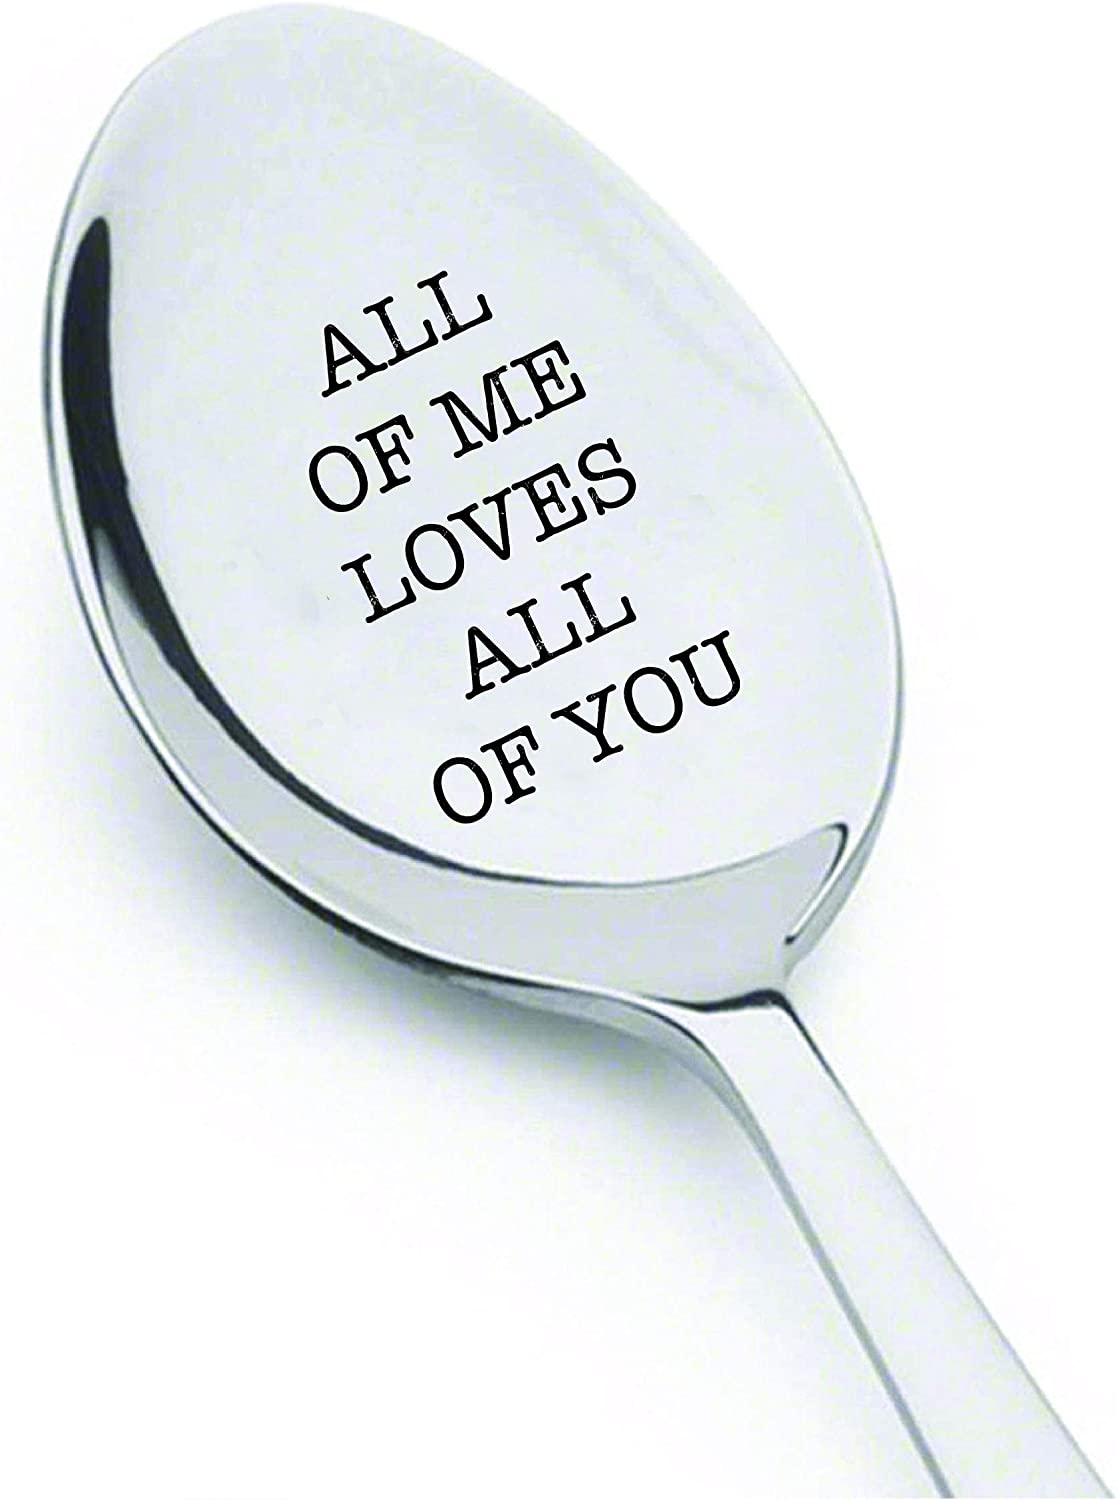 Engraved Spoon Gift - All Of Me Loves All Of You Wedding anniversary Boyfriend Girlfriend Birthday Valentine gifts/Perfect gift for food lovers | stainless steel spoon of size 7 inches